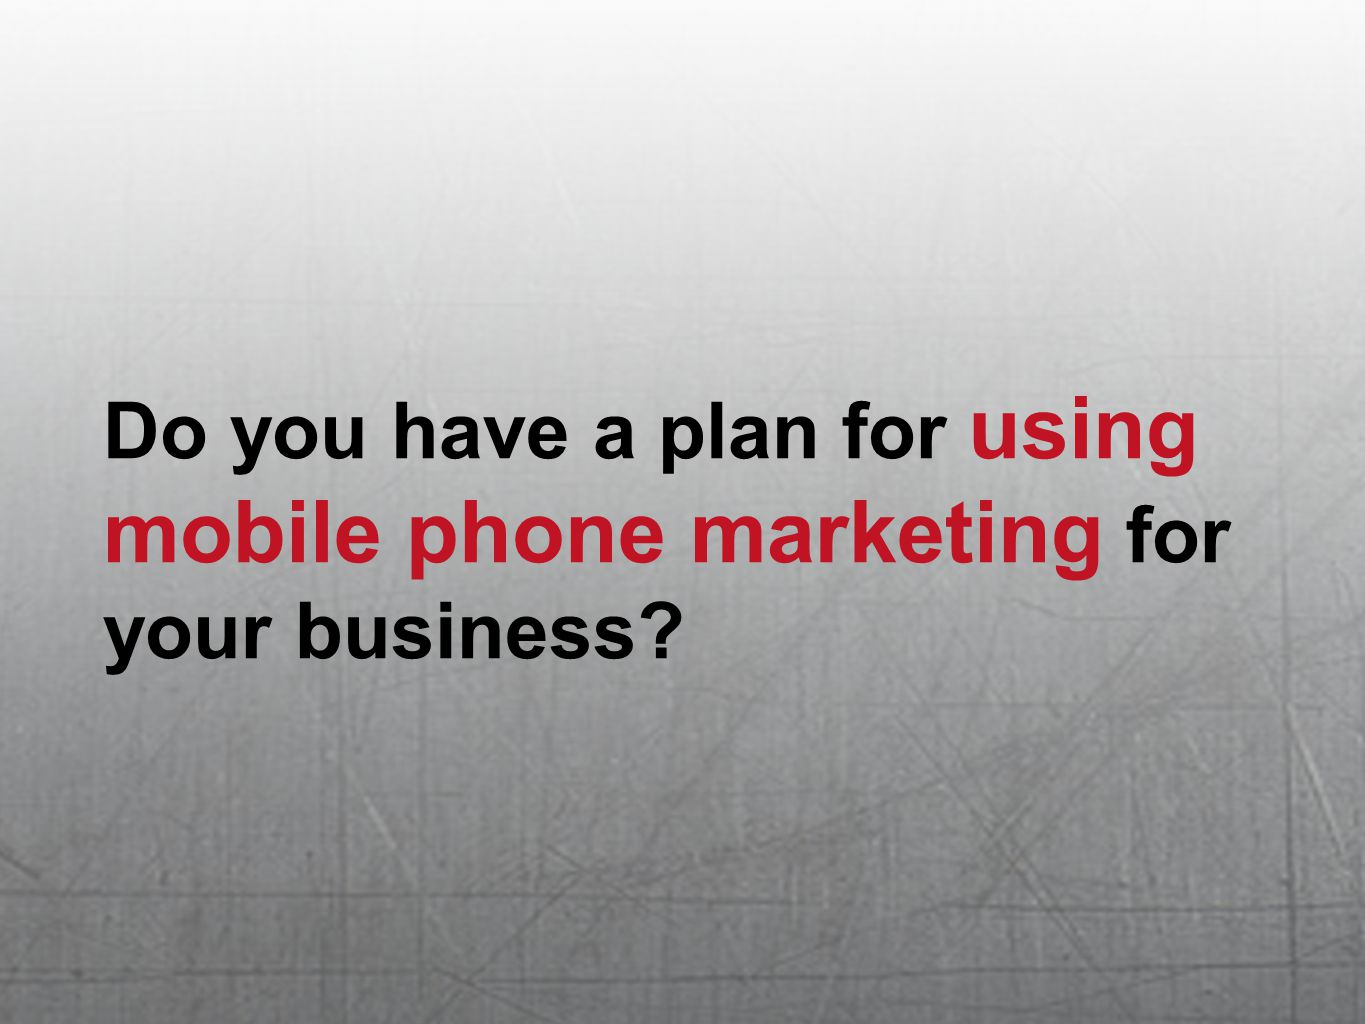 Do you have a plan for using mobile phone marketing for your business